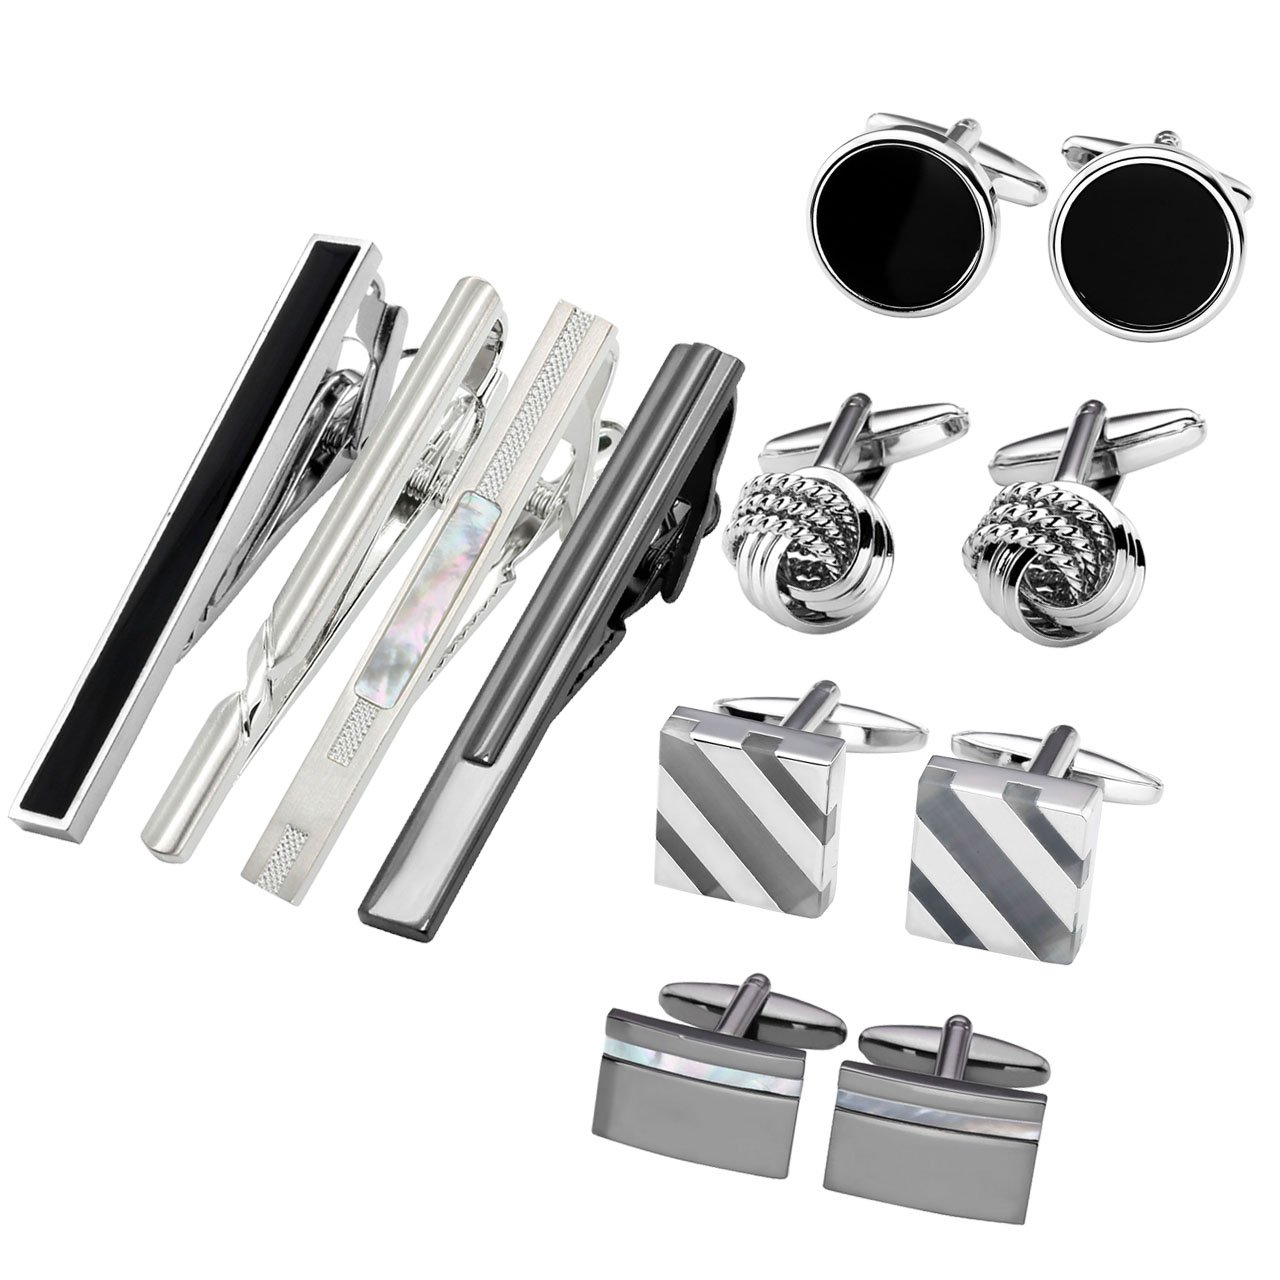 Jovivi 12pcs Stainless Steel Men's Classic Silver Cufflinks and Tie Bar Set for French Cuff Dress Shirts with Gift Box